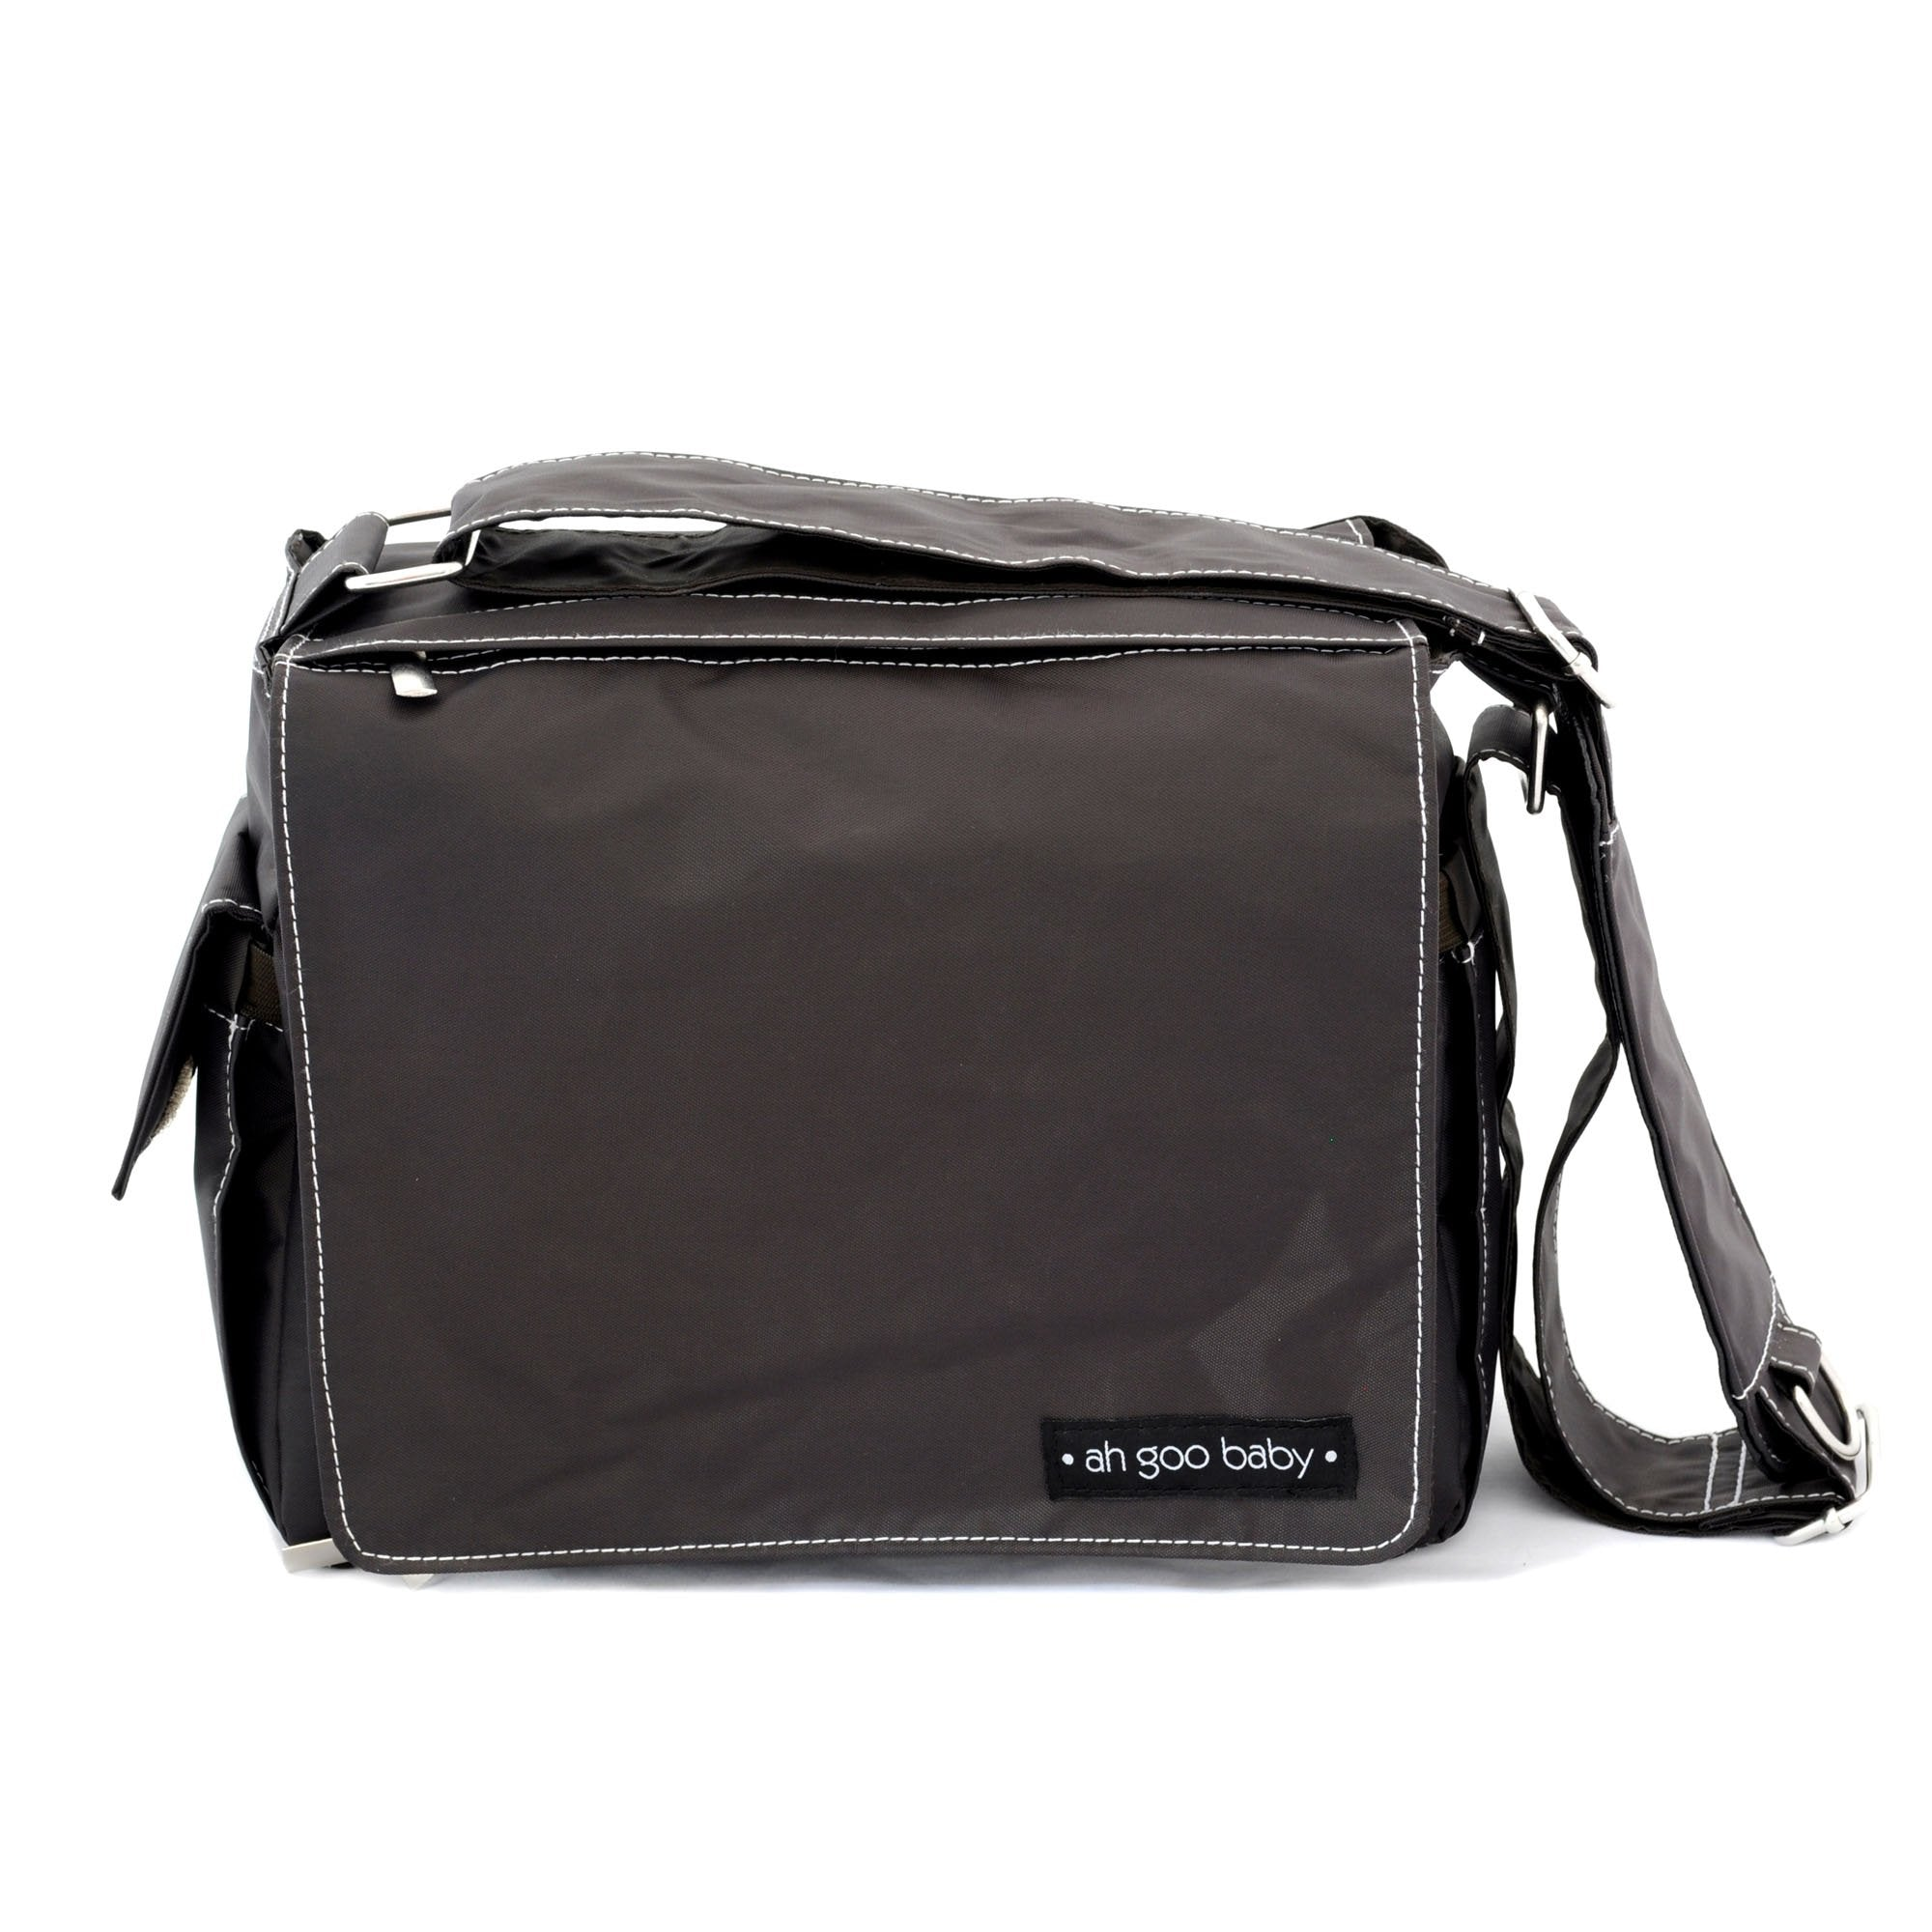 BabyGoo™ Diaper Bag Grab & Go